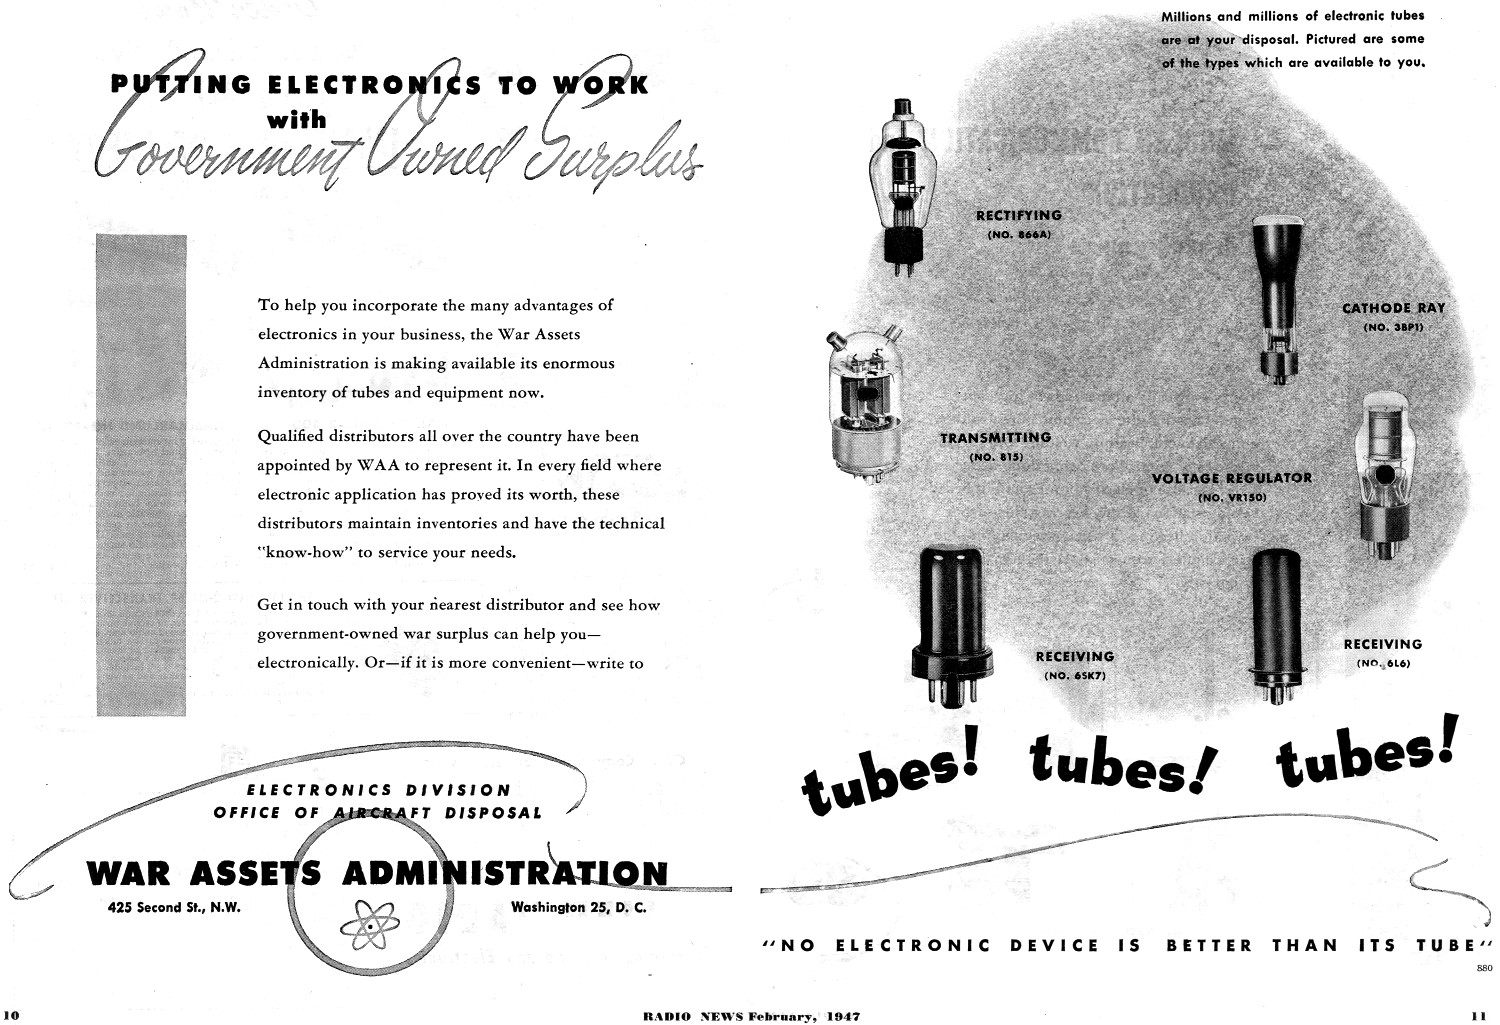 War Assets Administration Advertisement, February 1947 Radio